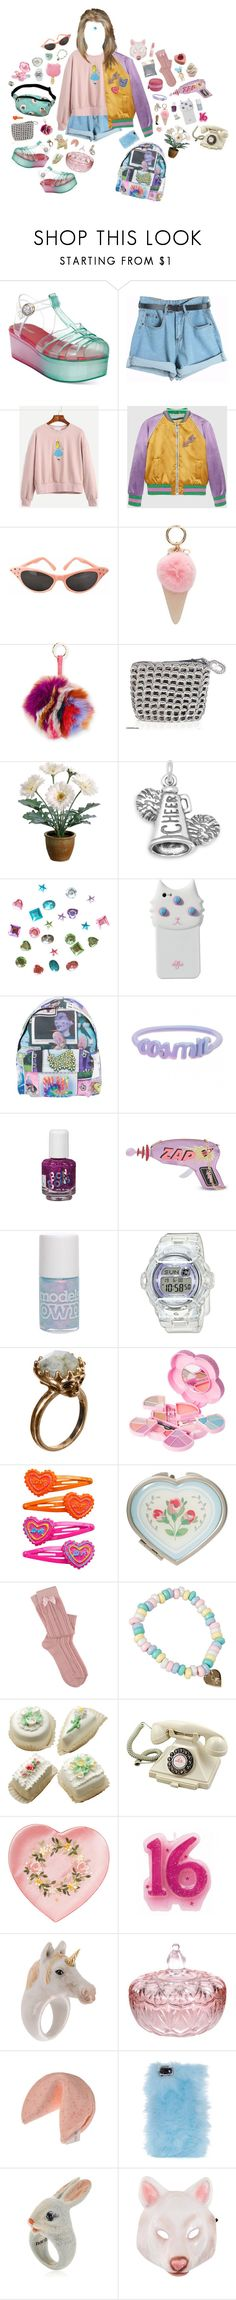 """""""Bored with myself"""" by queenofrocknroll ❤ liked on Polyvore featuring Wanted, Chicnova Fashion, Gucci, Iphoria, Jocelyn, NOVICA, Gerber, BillyTheTree, Valfré and Jeremy Scott"""